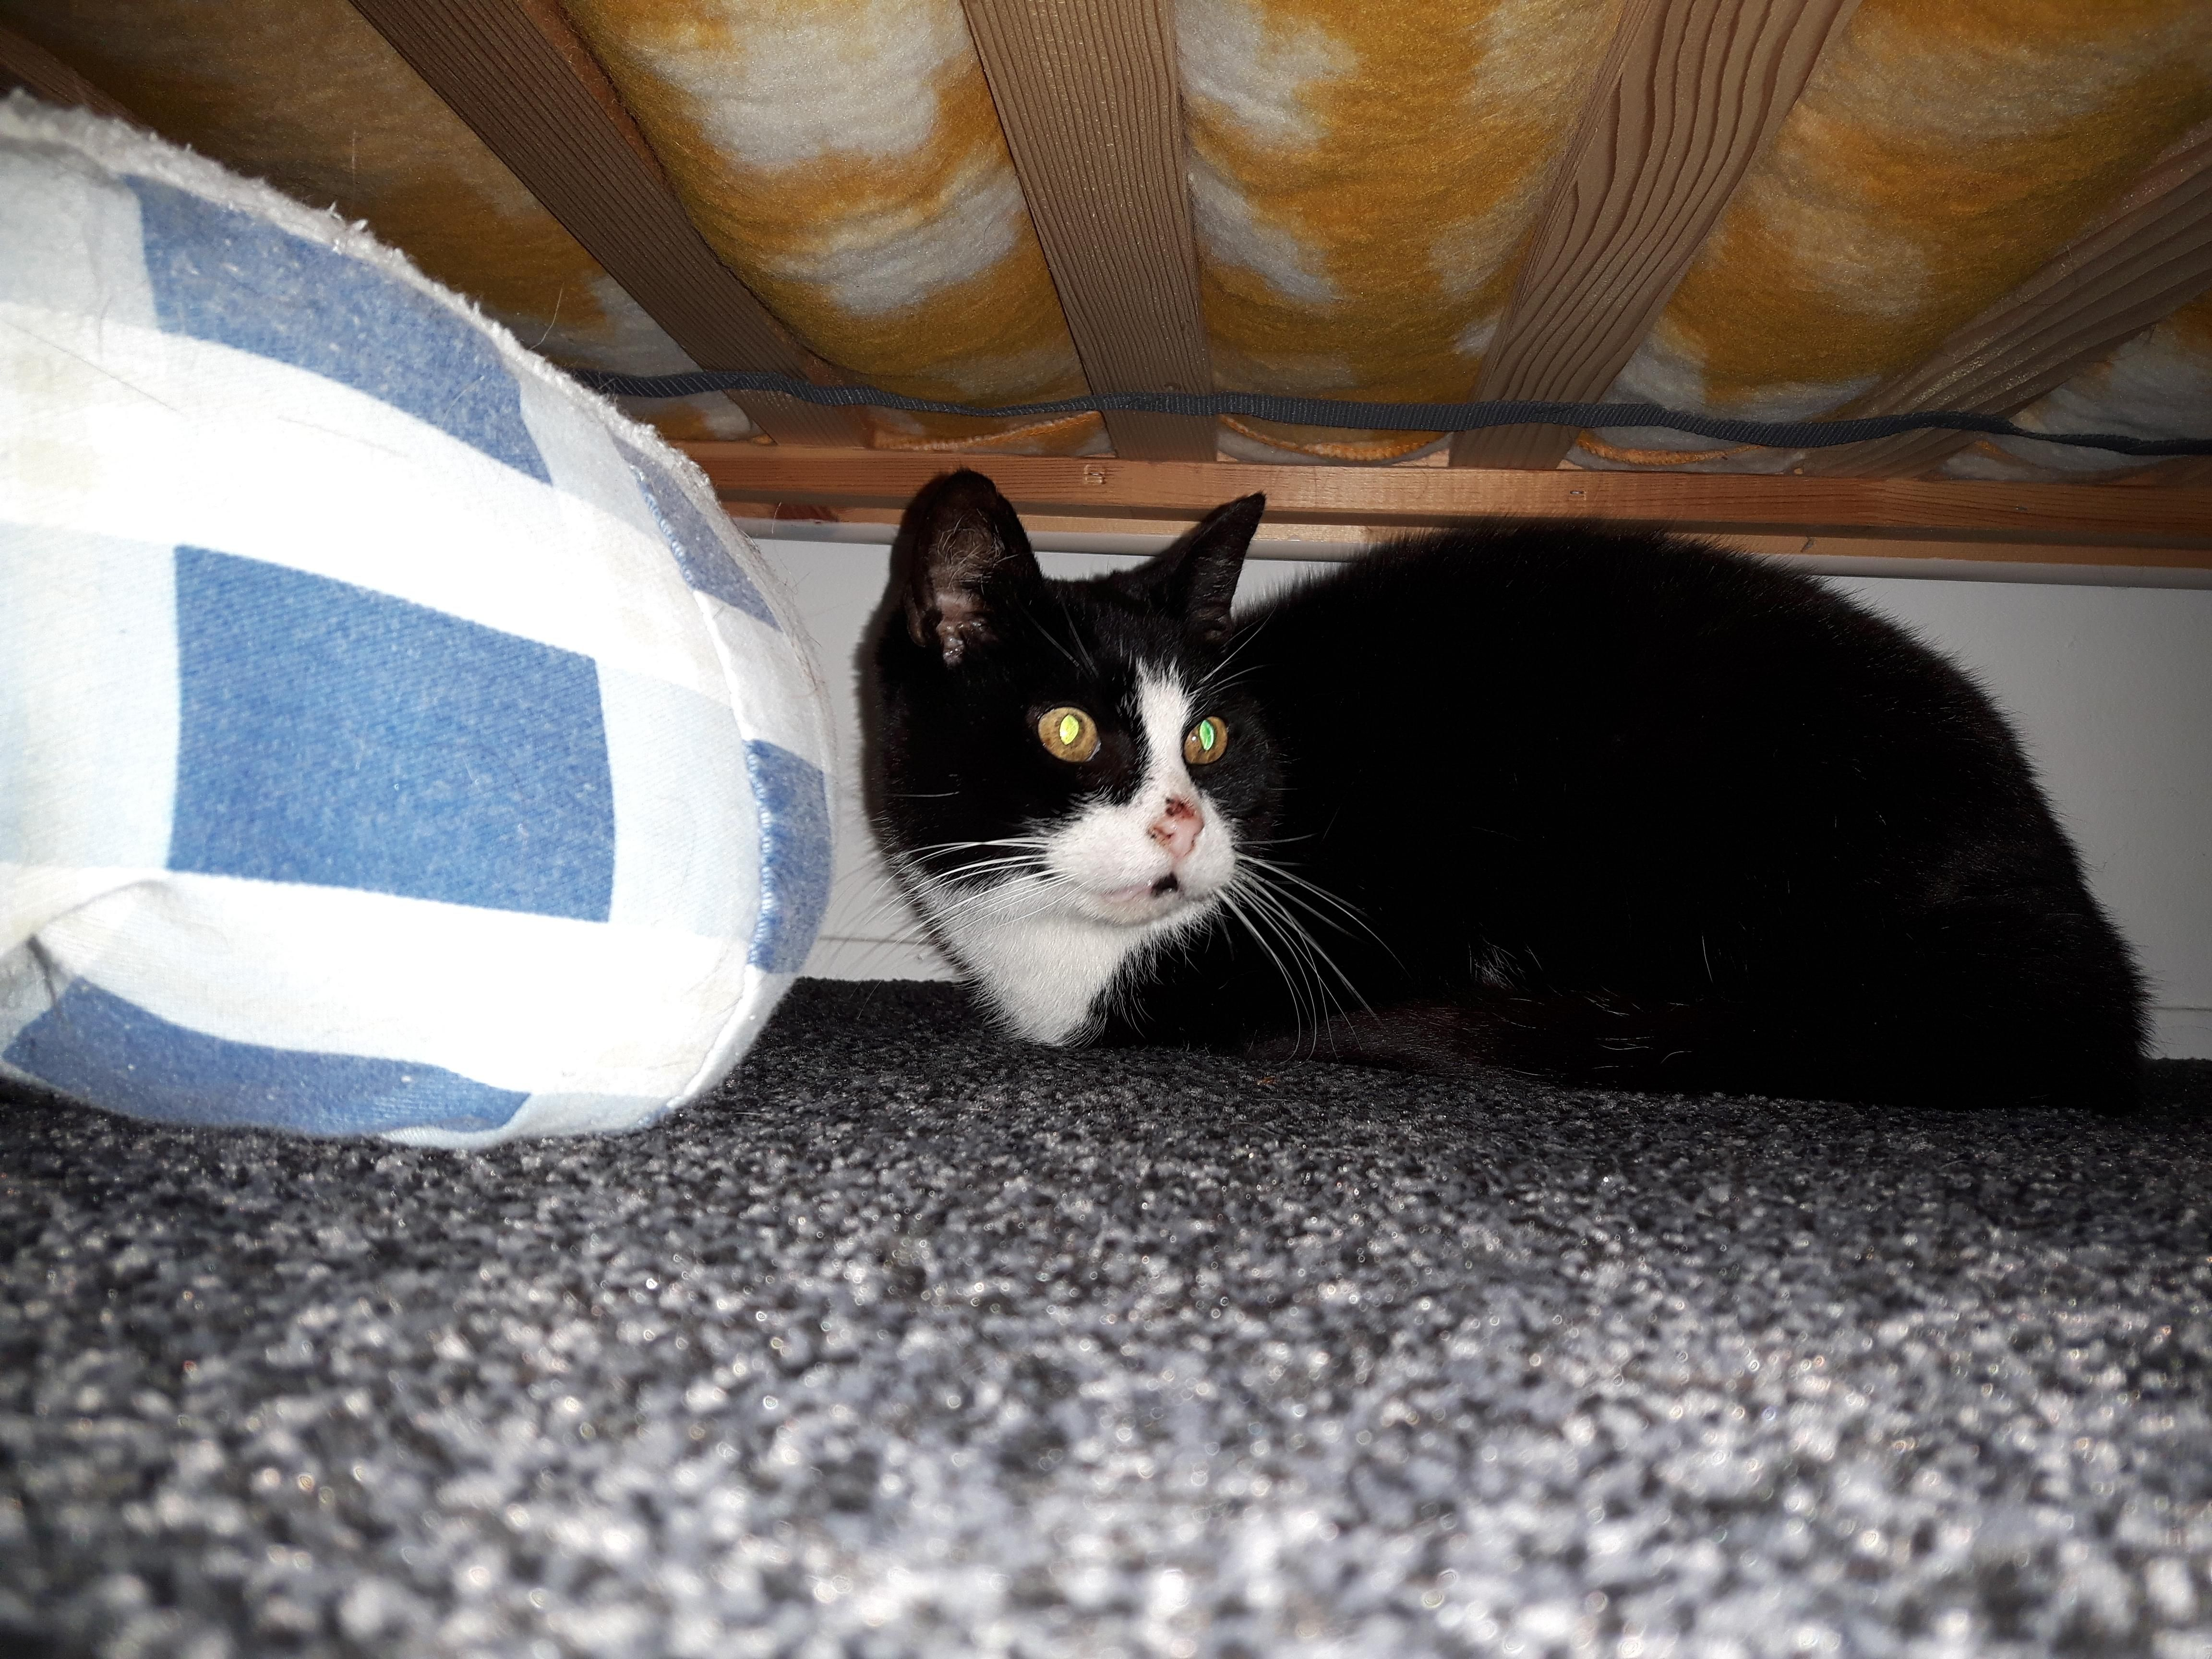 My cat hiding under my bed stirred by a fireworks